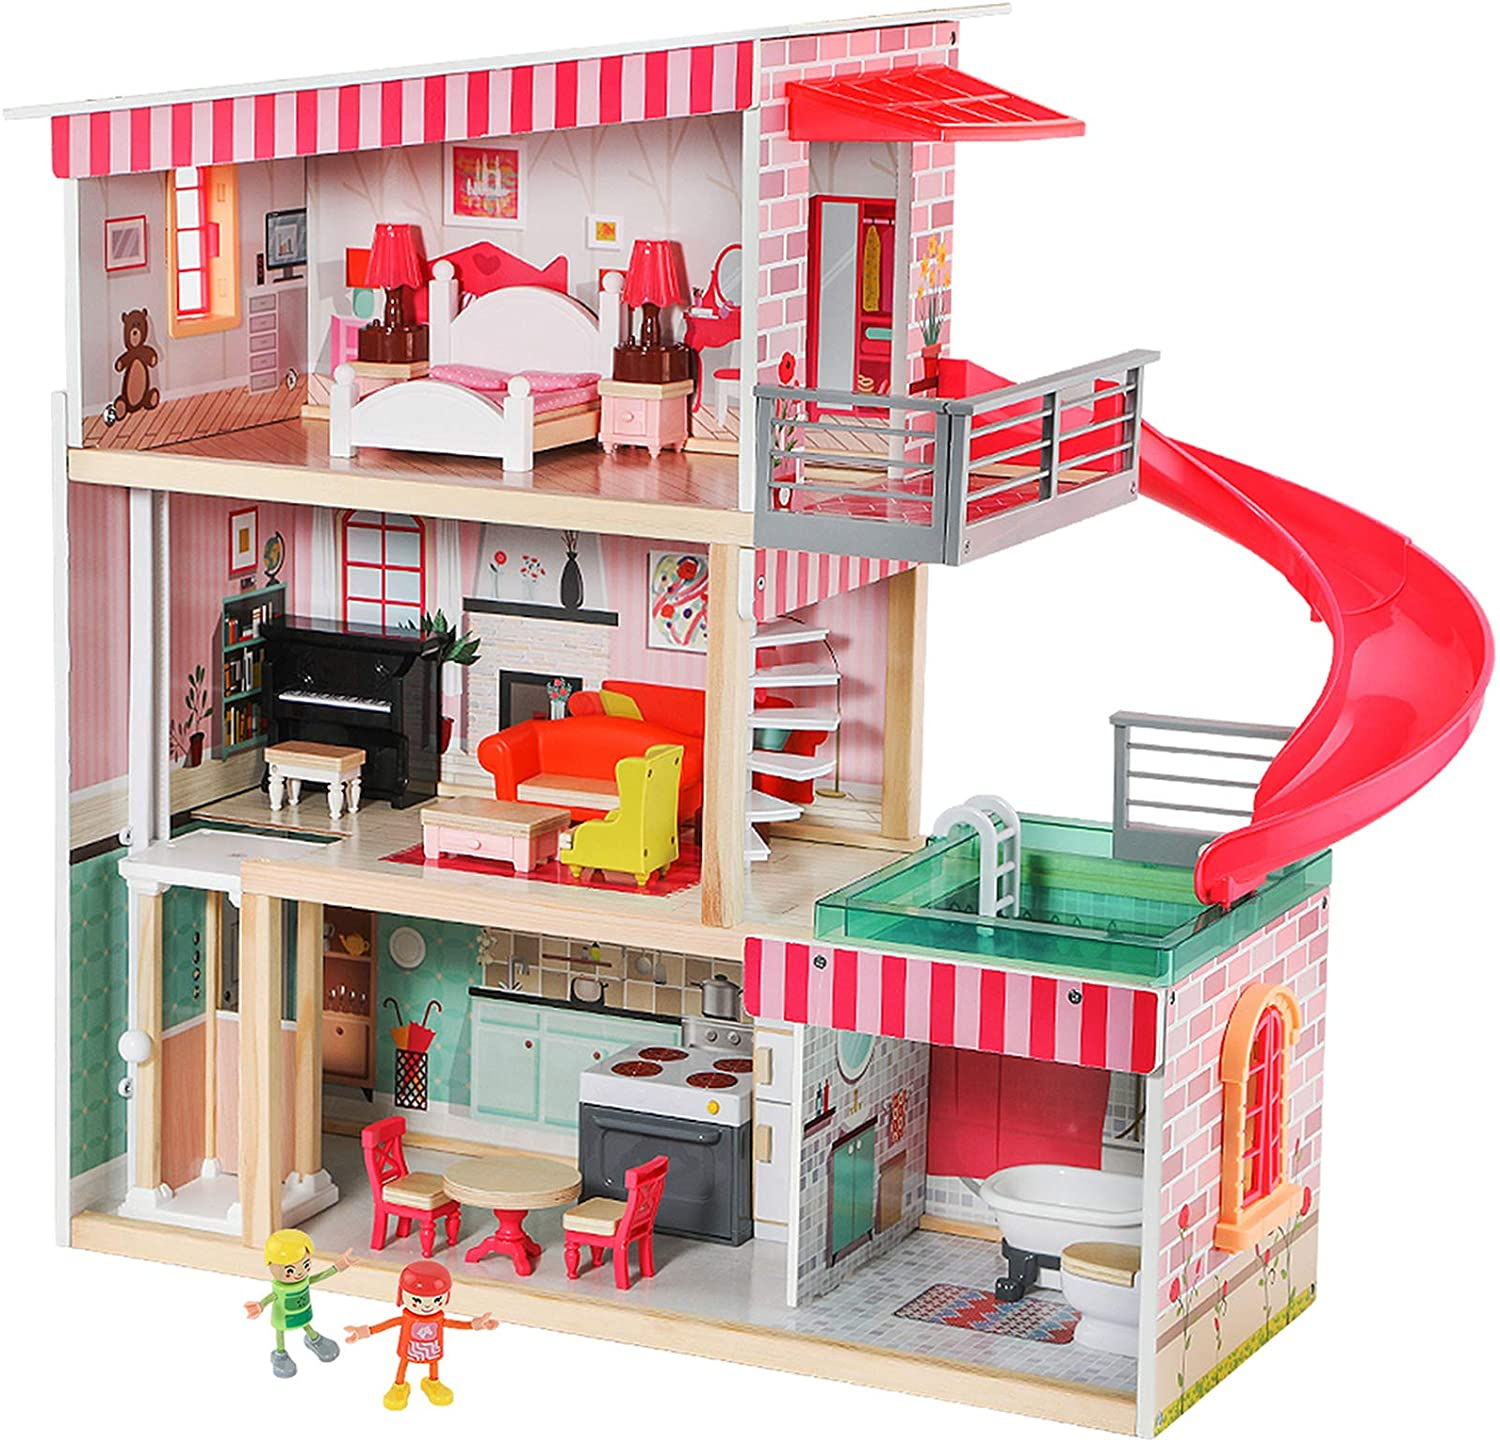 TOP BRIGHT Dollhouse with Furniture and Dolls, Wooden Doll House for Little Girls 3 4 5 Year olds, 18 Furniture with Sounds and Lights